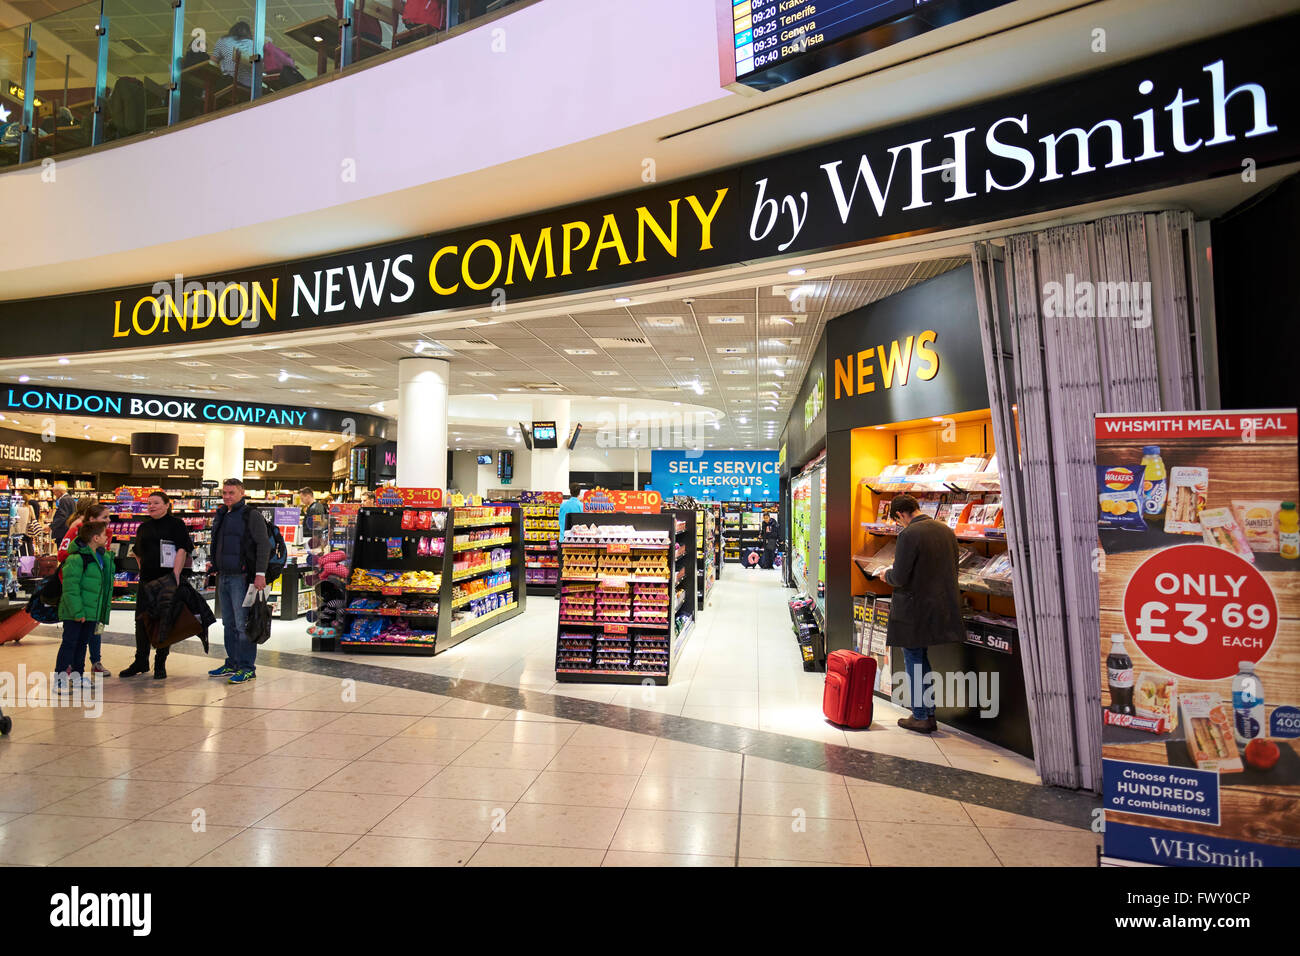 London News Company By WH Smith Duty Free Shop North Terminal Gatwick Airport West Sussex London UK - Stock Image